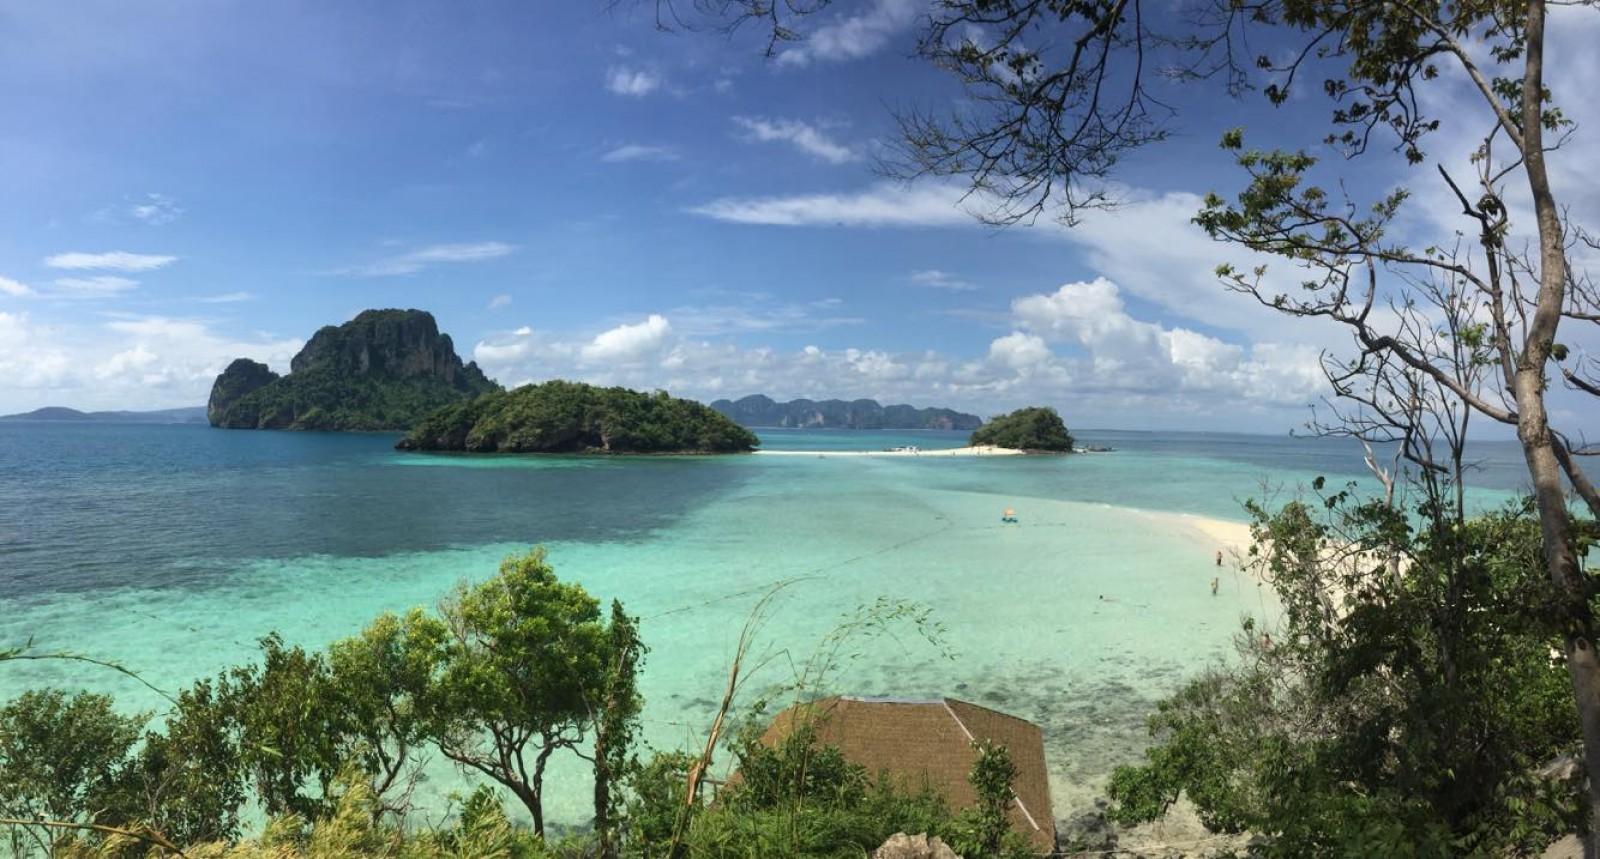 Krabi Snorkelling Adventure Travel The Great Next